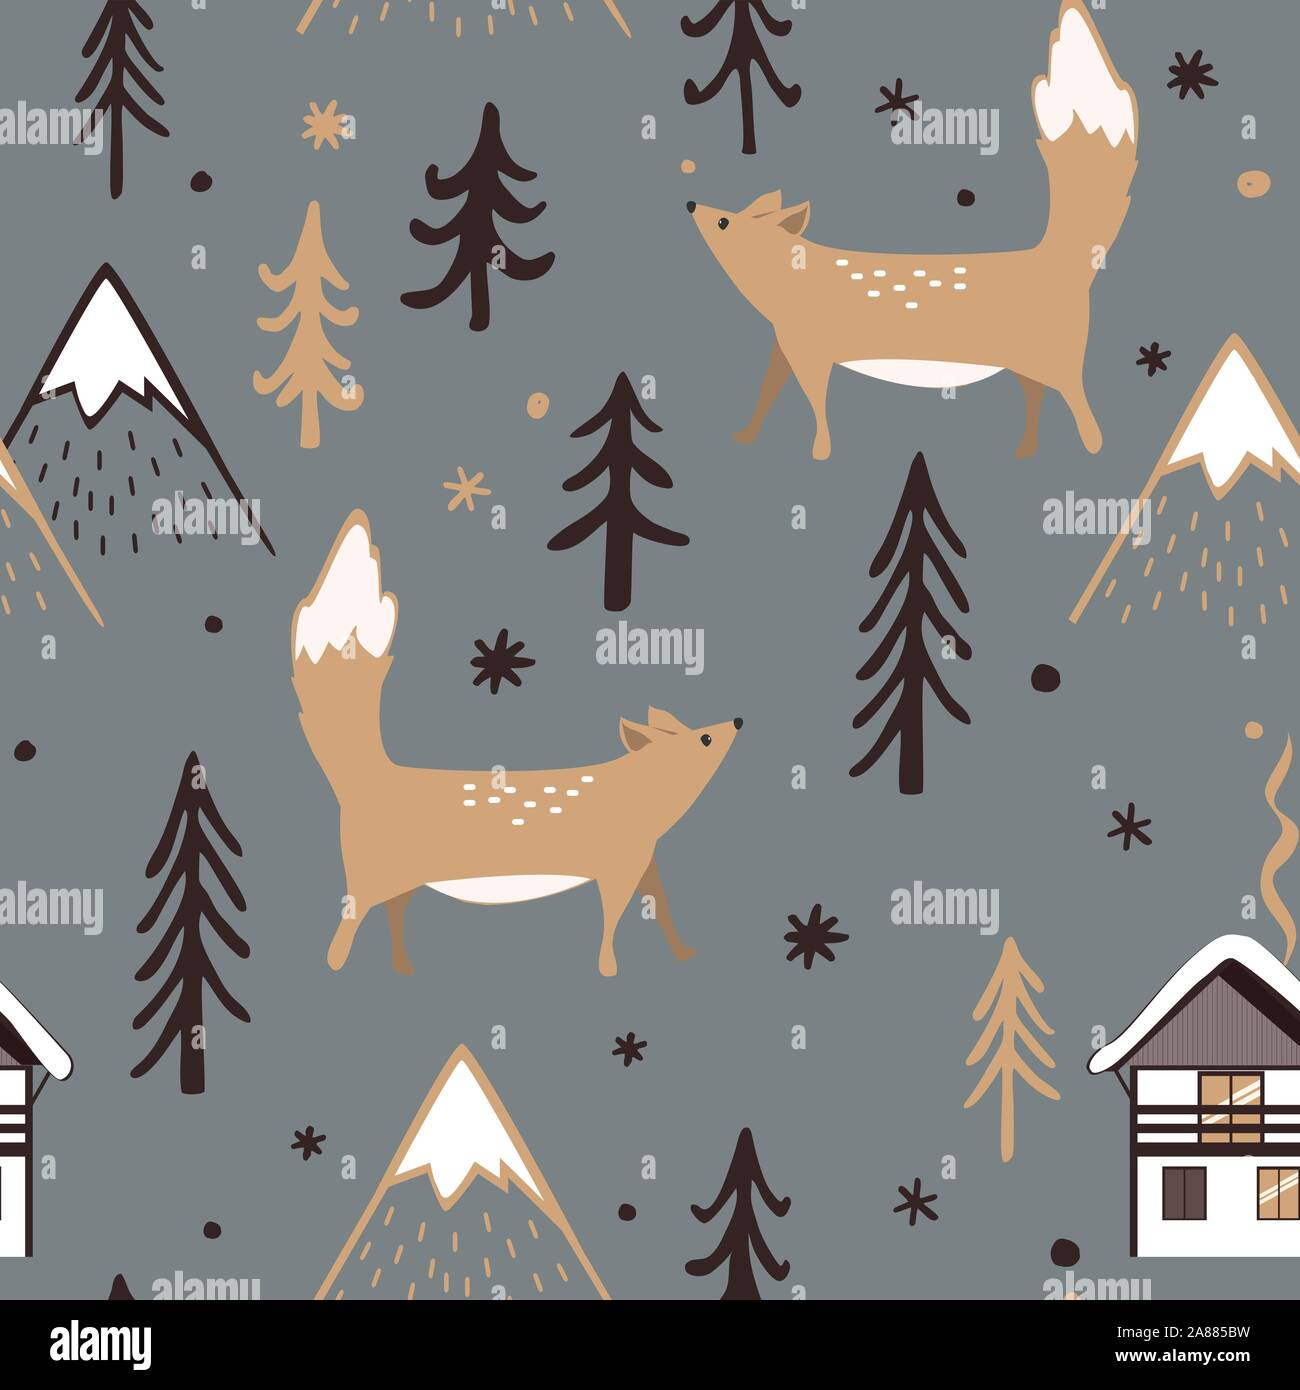 Seamless Christmas pattern with forest trees, mountains, and foxes. Happy New Year background. Xmas Vector design for winter holidays. Child drawing Stock Vector